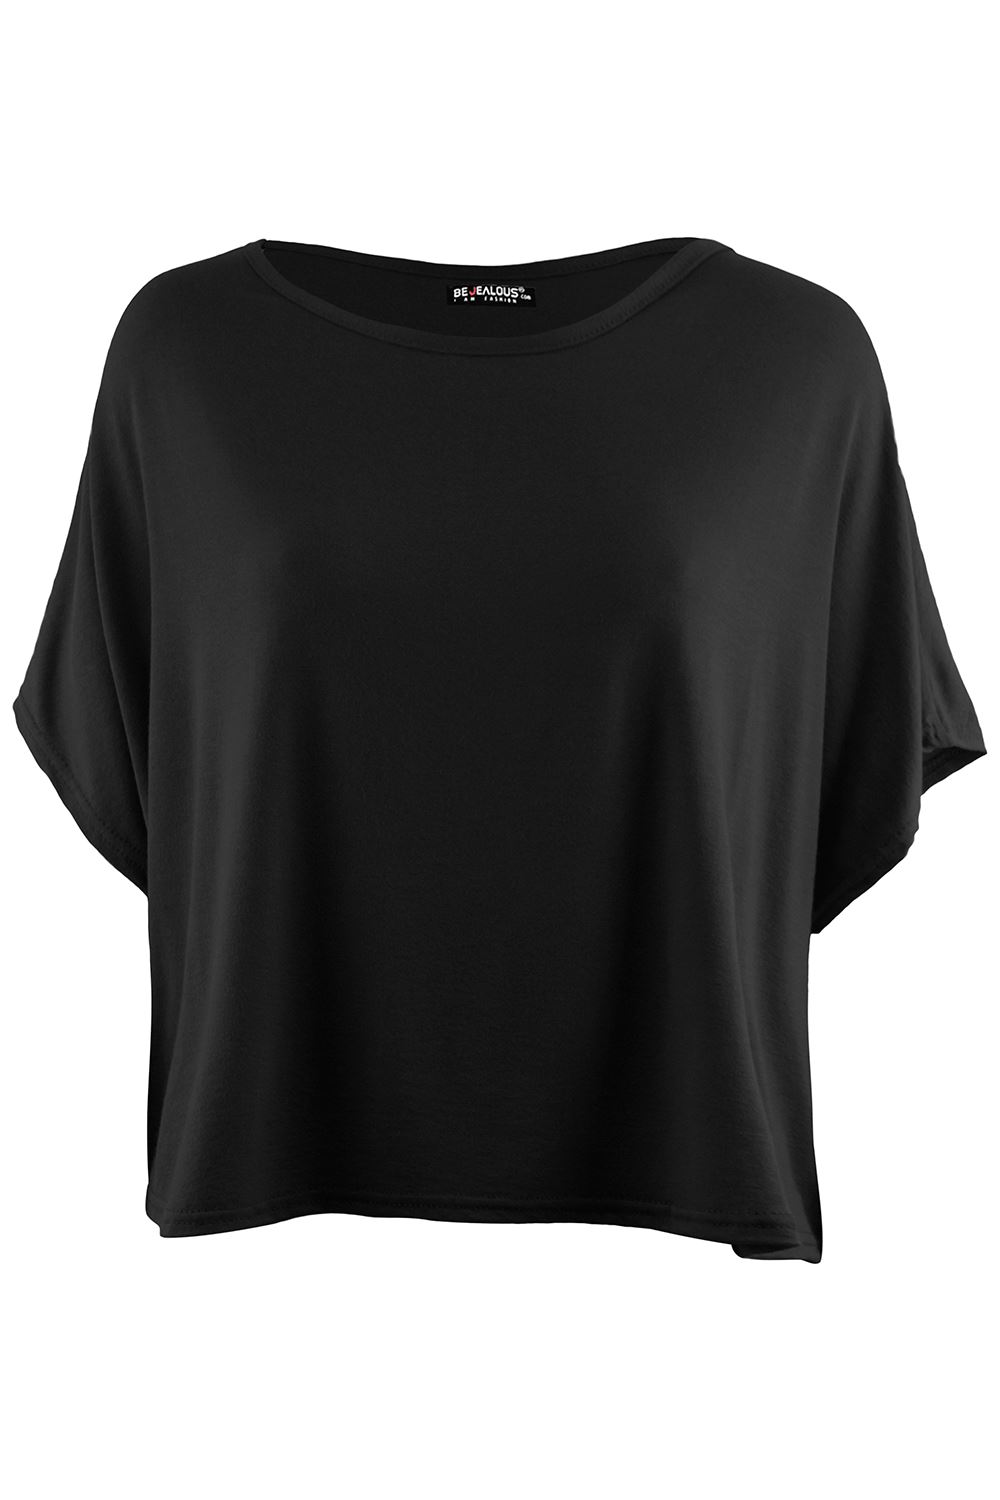 Ladies-Casual-Batwing-Short-Sleeve-Round-Neck-Womens-Oversized-Baggy-T-Shirt-Top